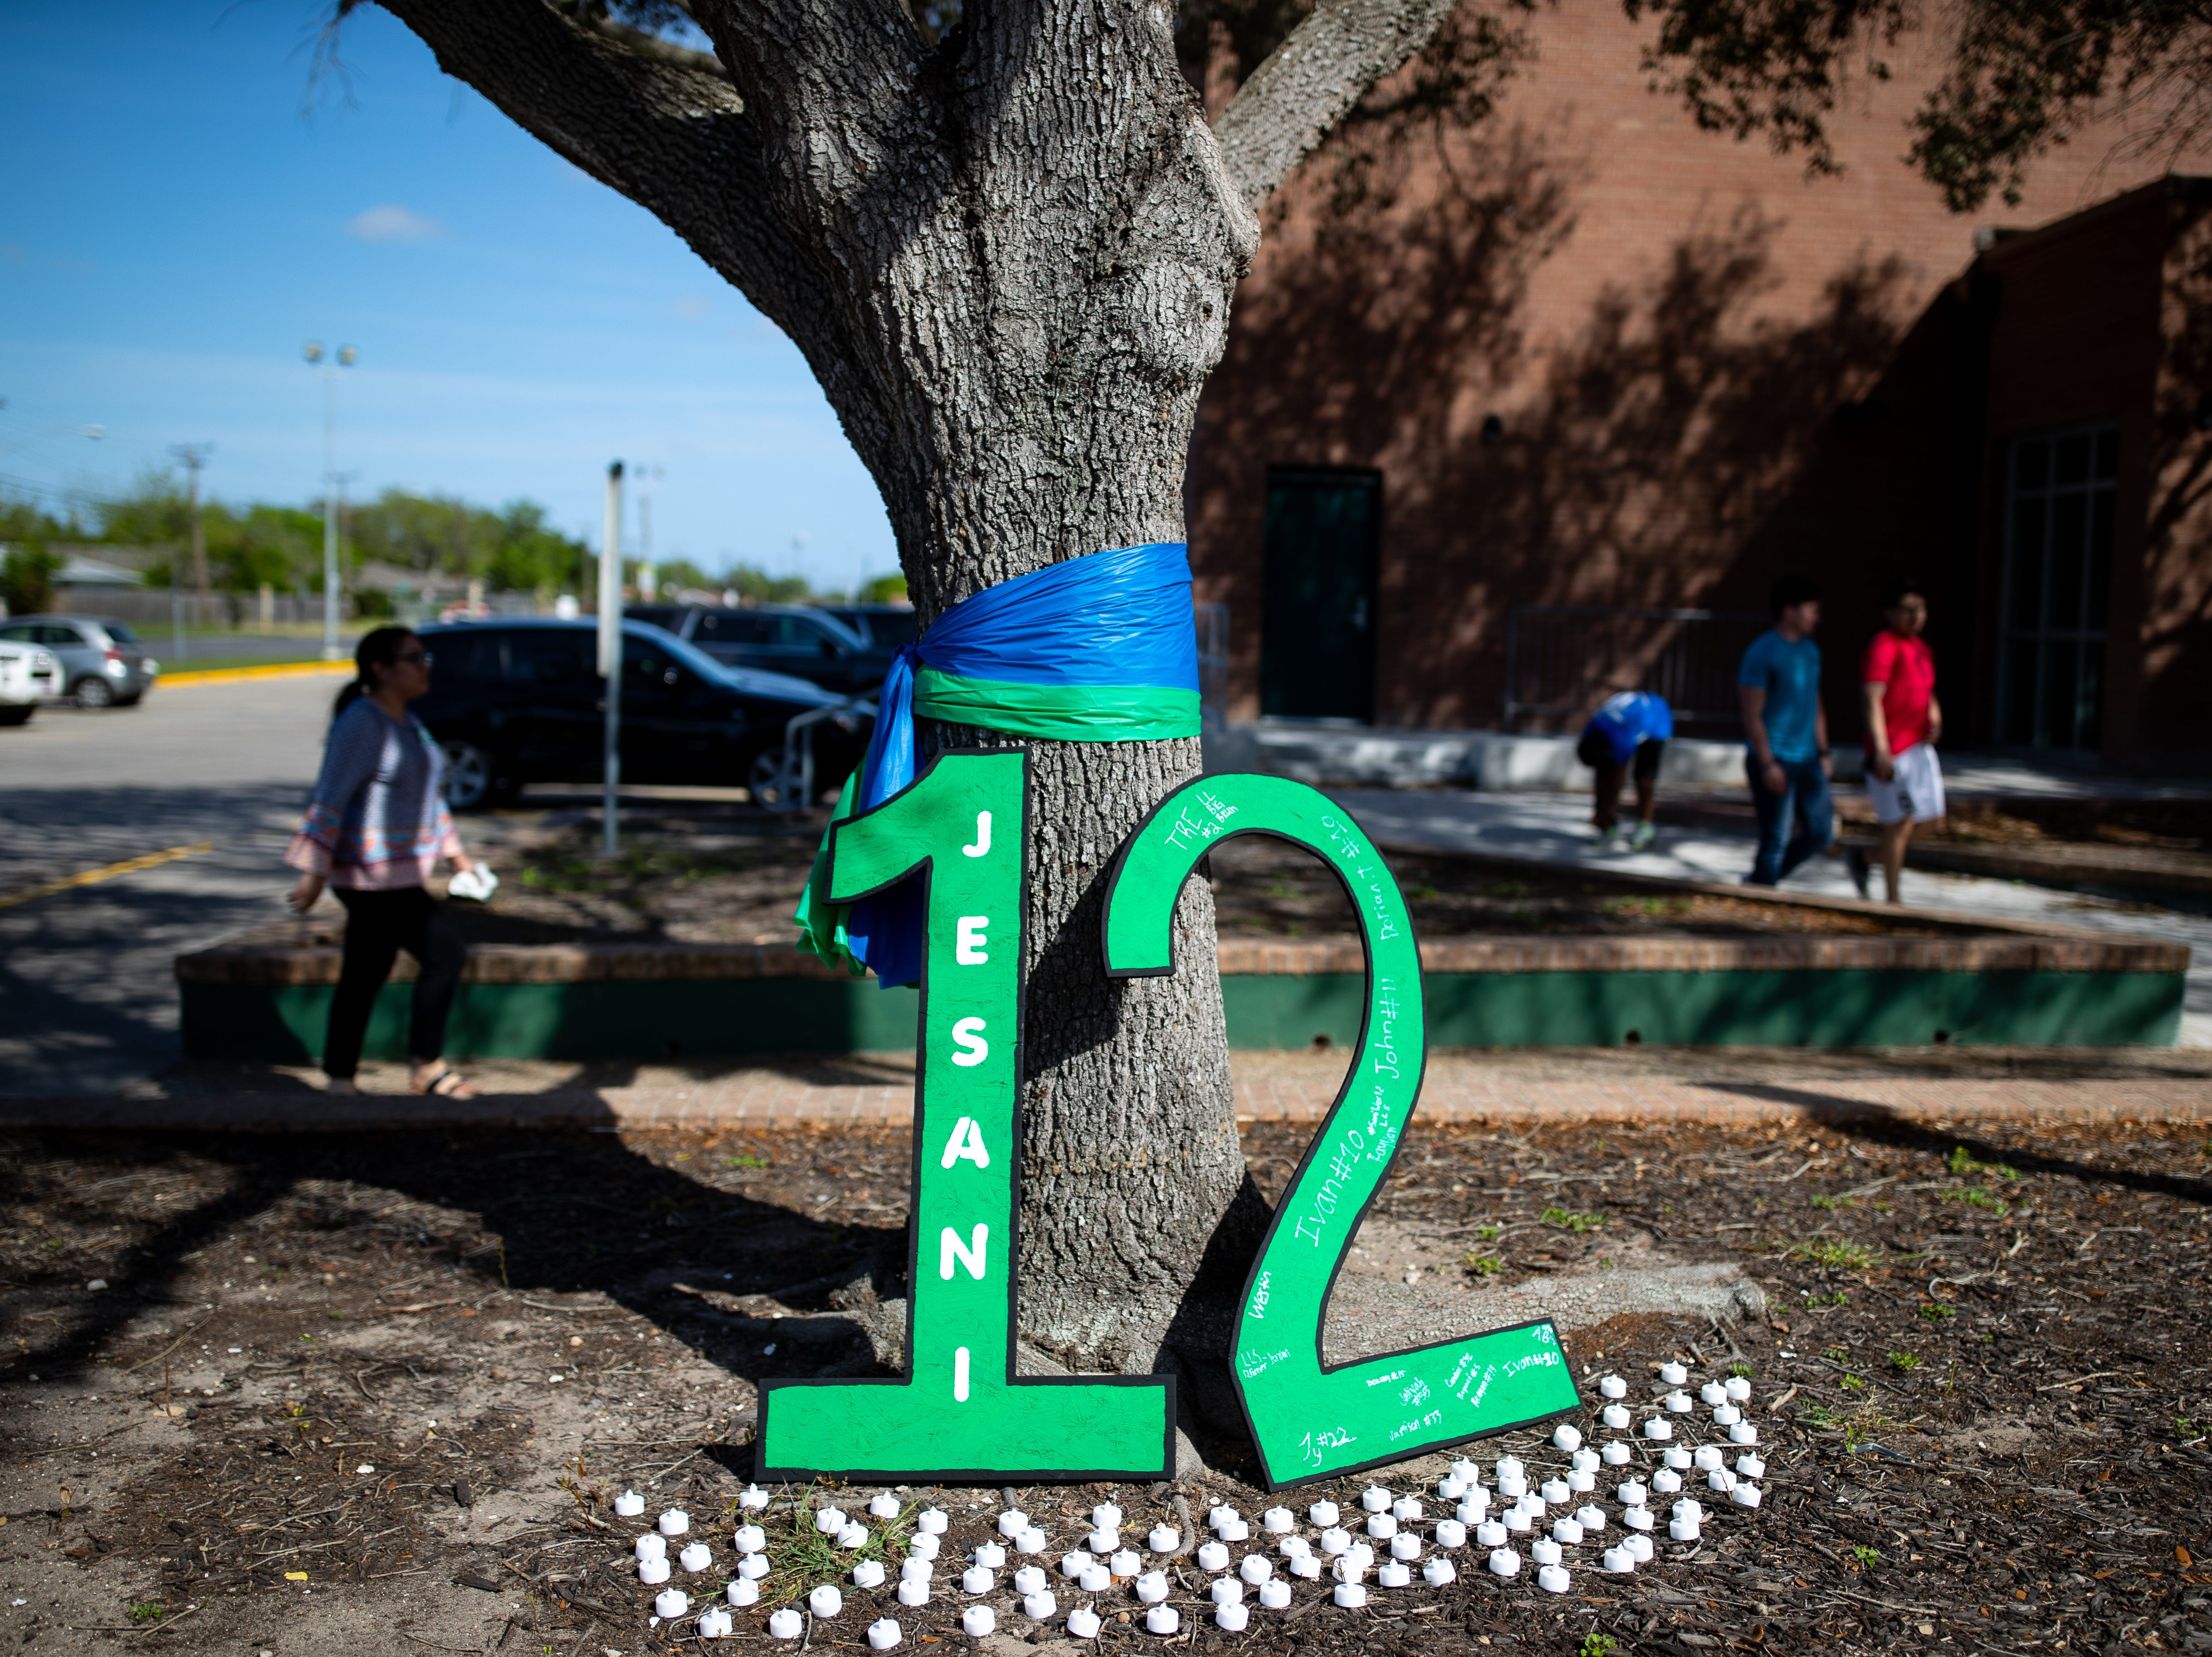 A big 12 sits in front of King High School to honor senior Je'Sani Smith on Monday, April 15, 2019. Je'Sani Smith's body was recovered Sunday afternoon near Bob Hall Pier after drowning on Whitecap Beach last week.